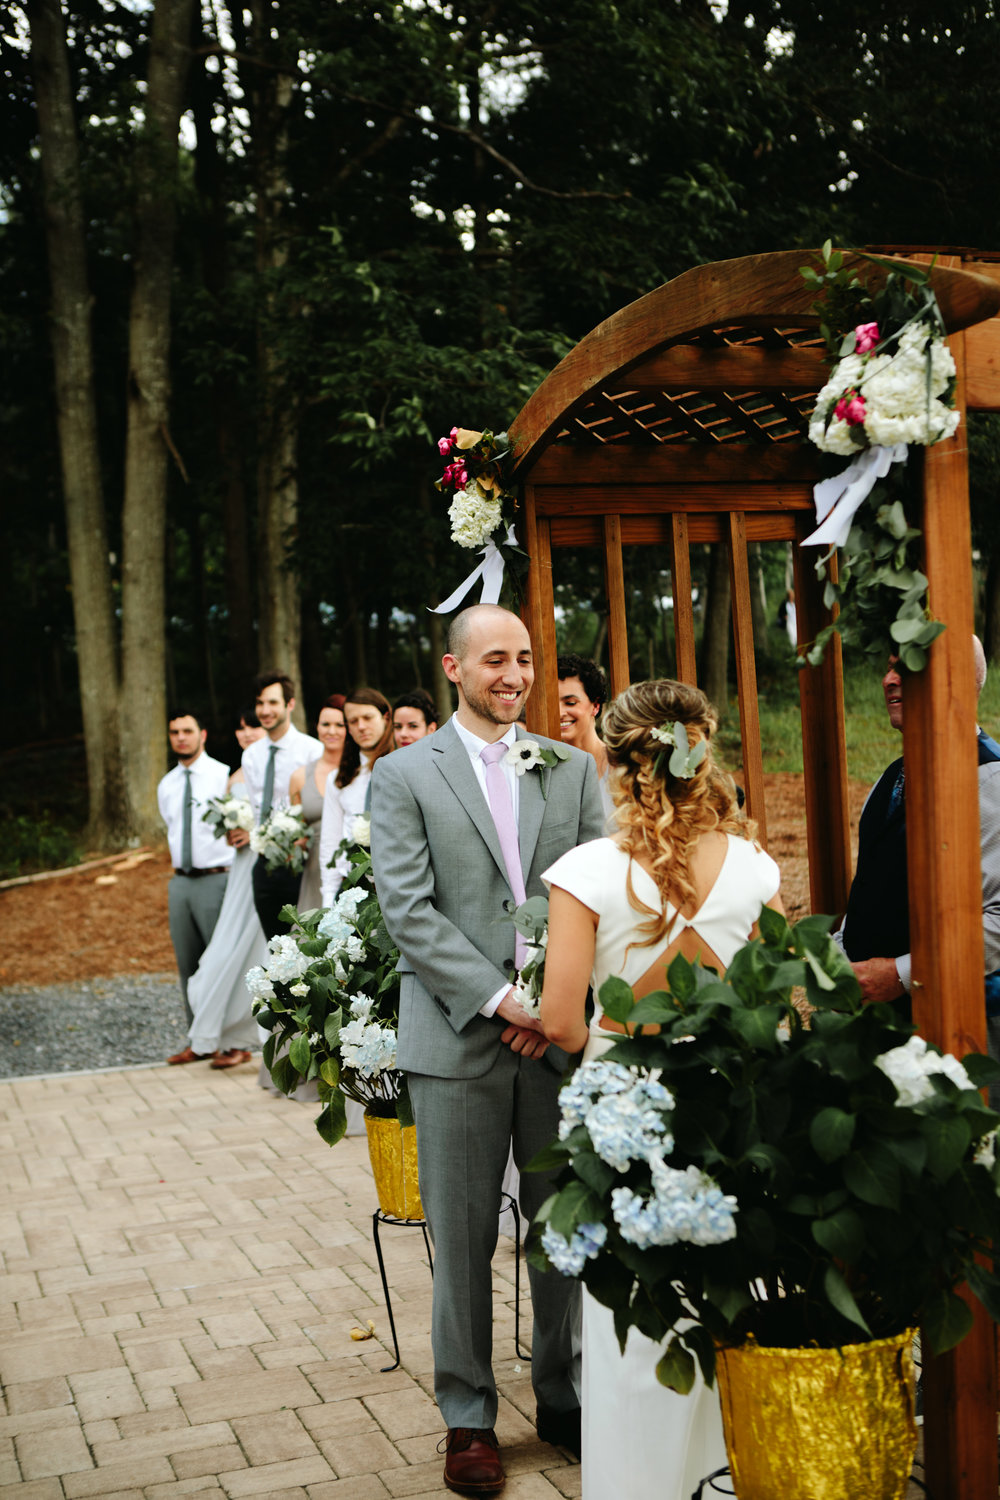 outdoor-woodsy-wedding-ceremony-7.jpg